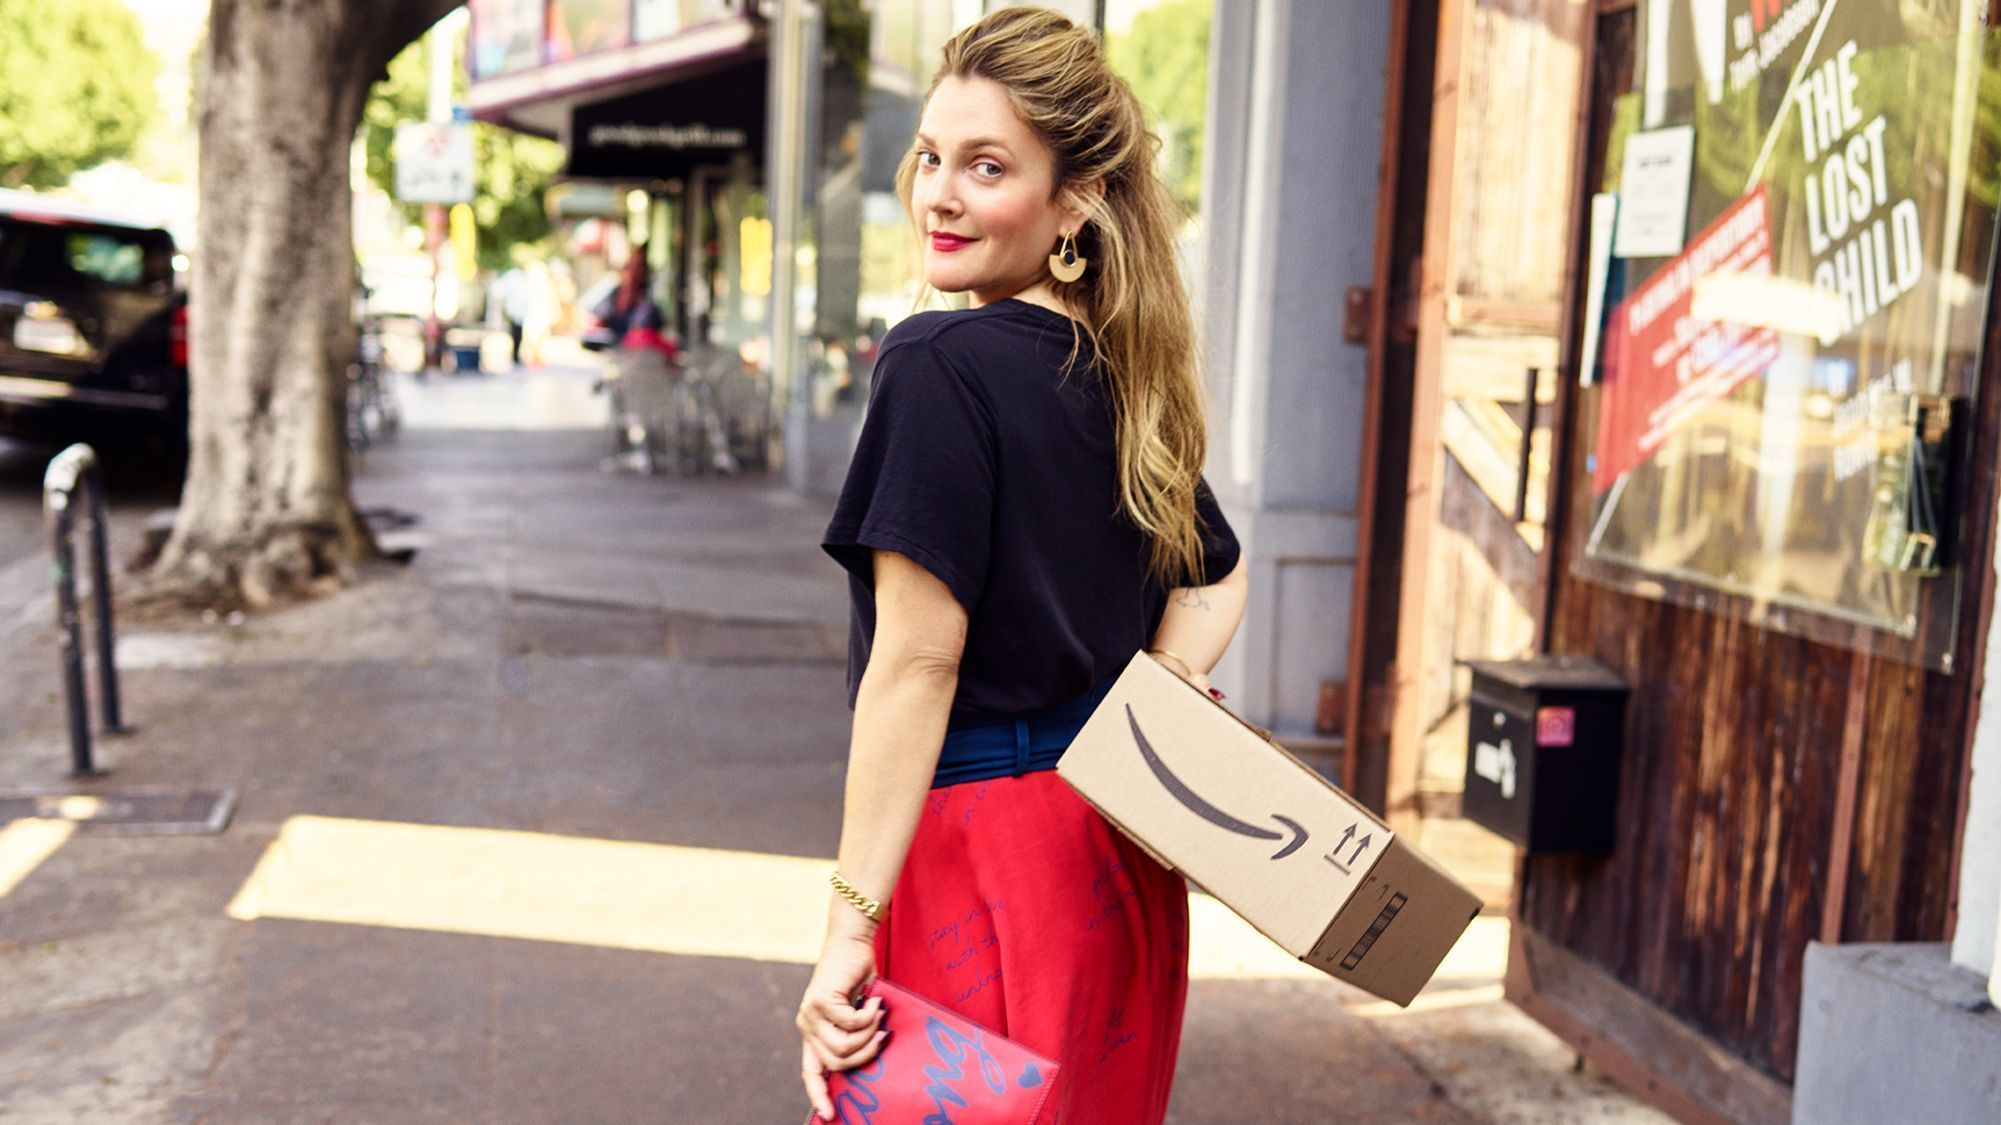 Drew Barrymore launches lifestyle brand on Amazon Fashion